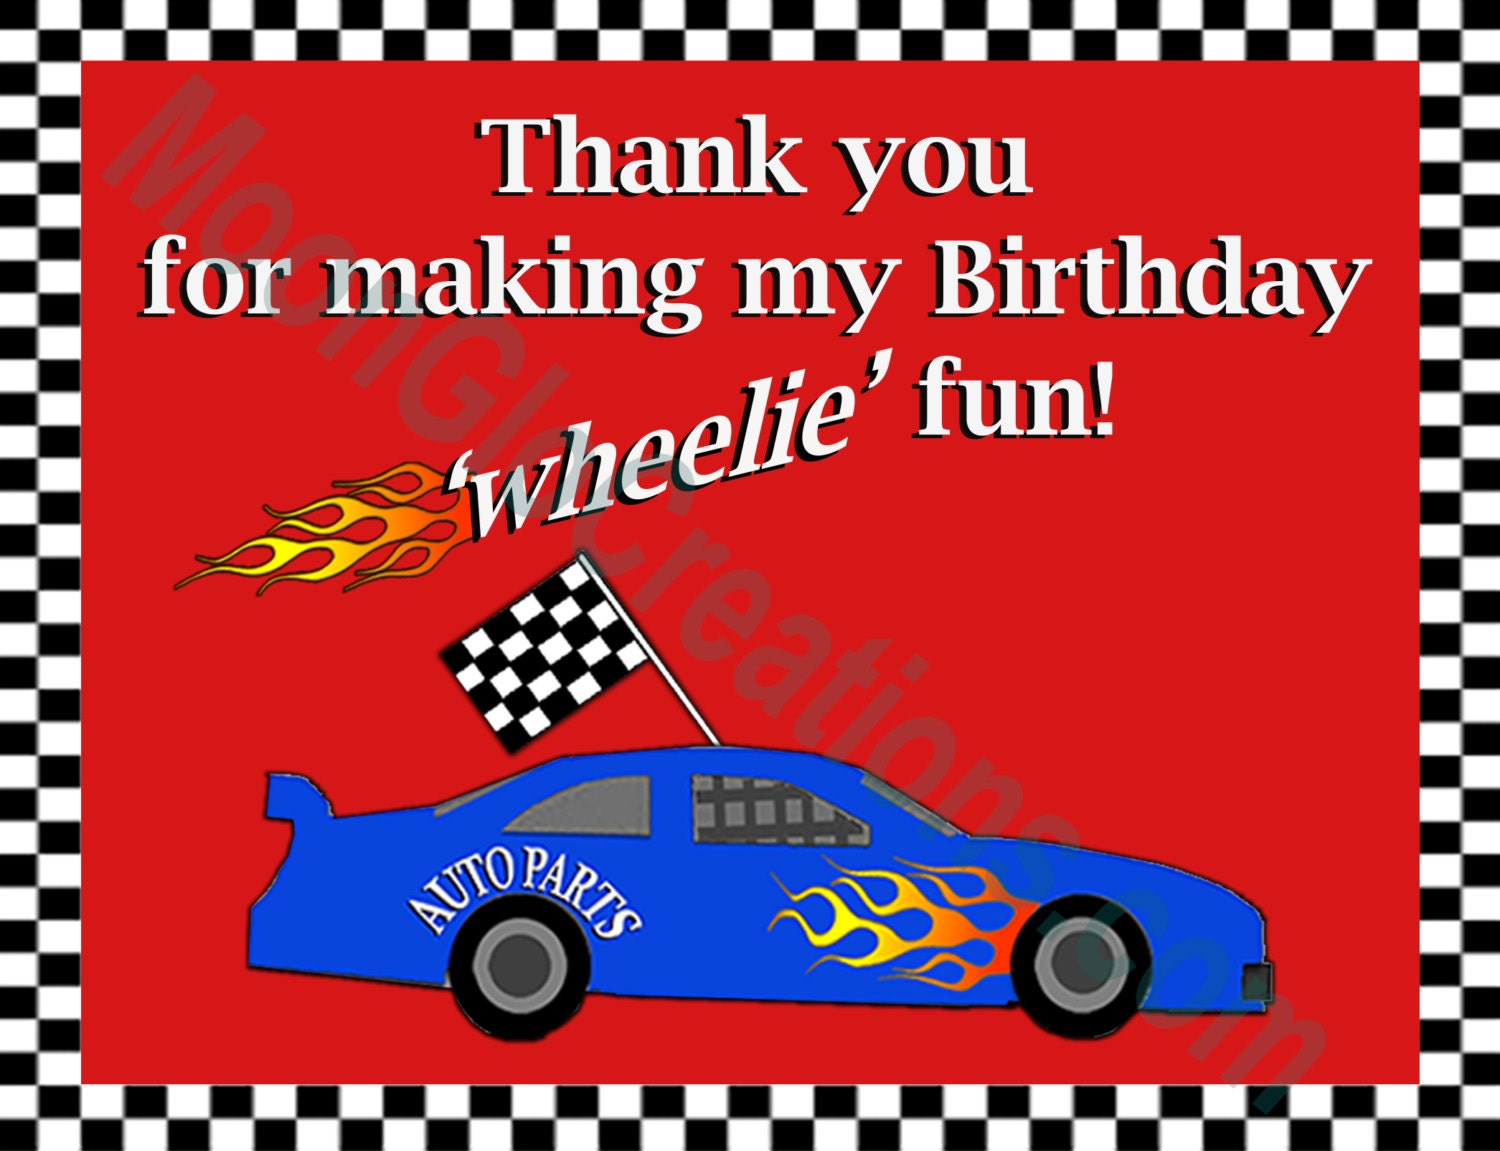 Race Car Theme Thank You Card Goodie Bag Tag Birthday Party